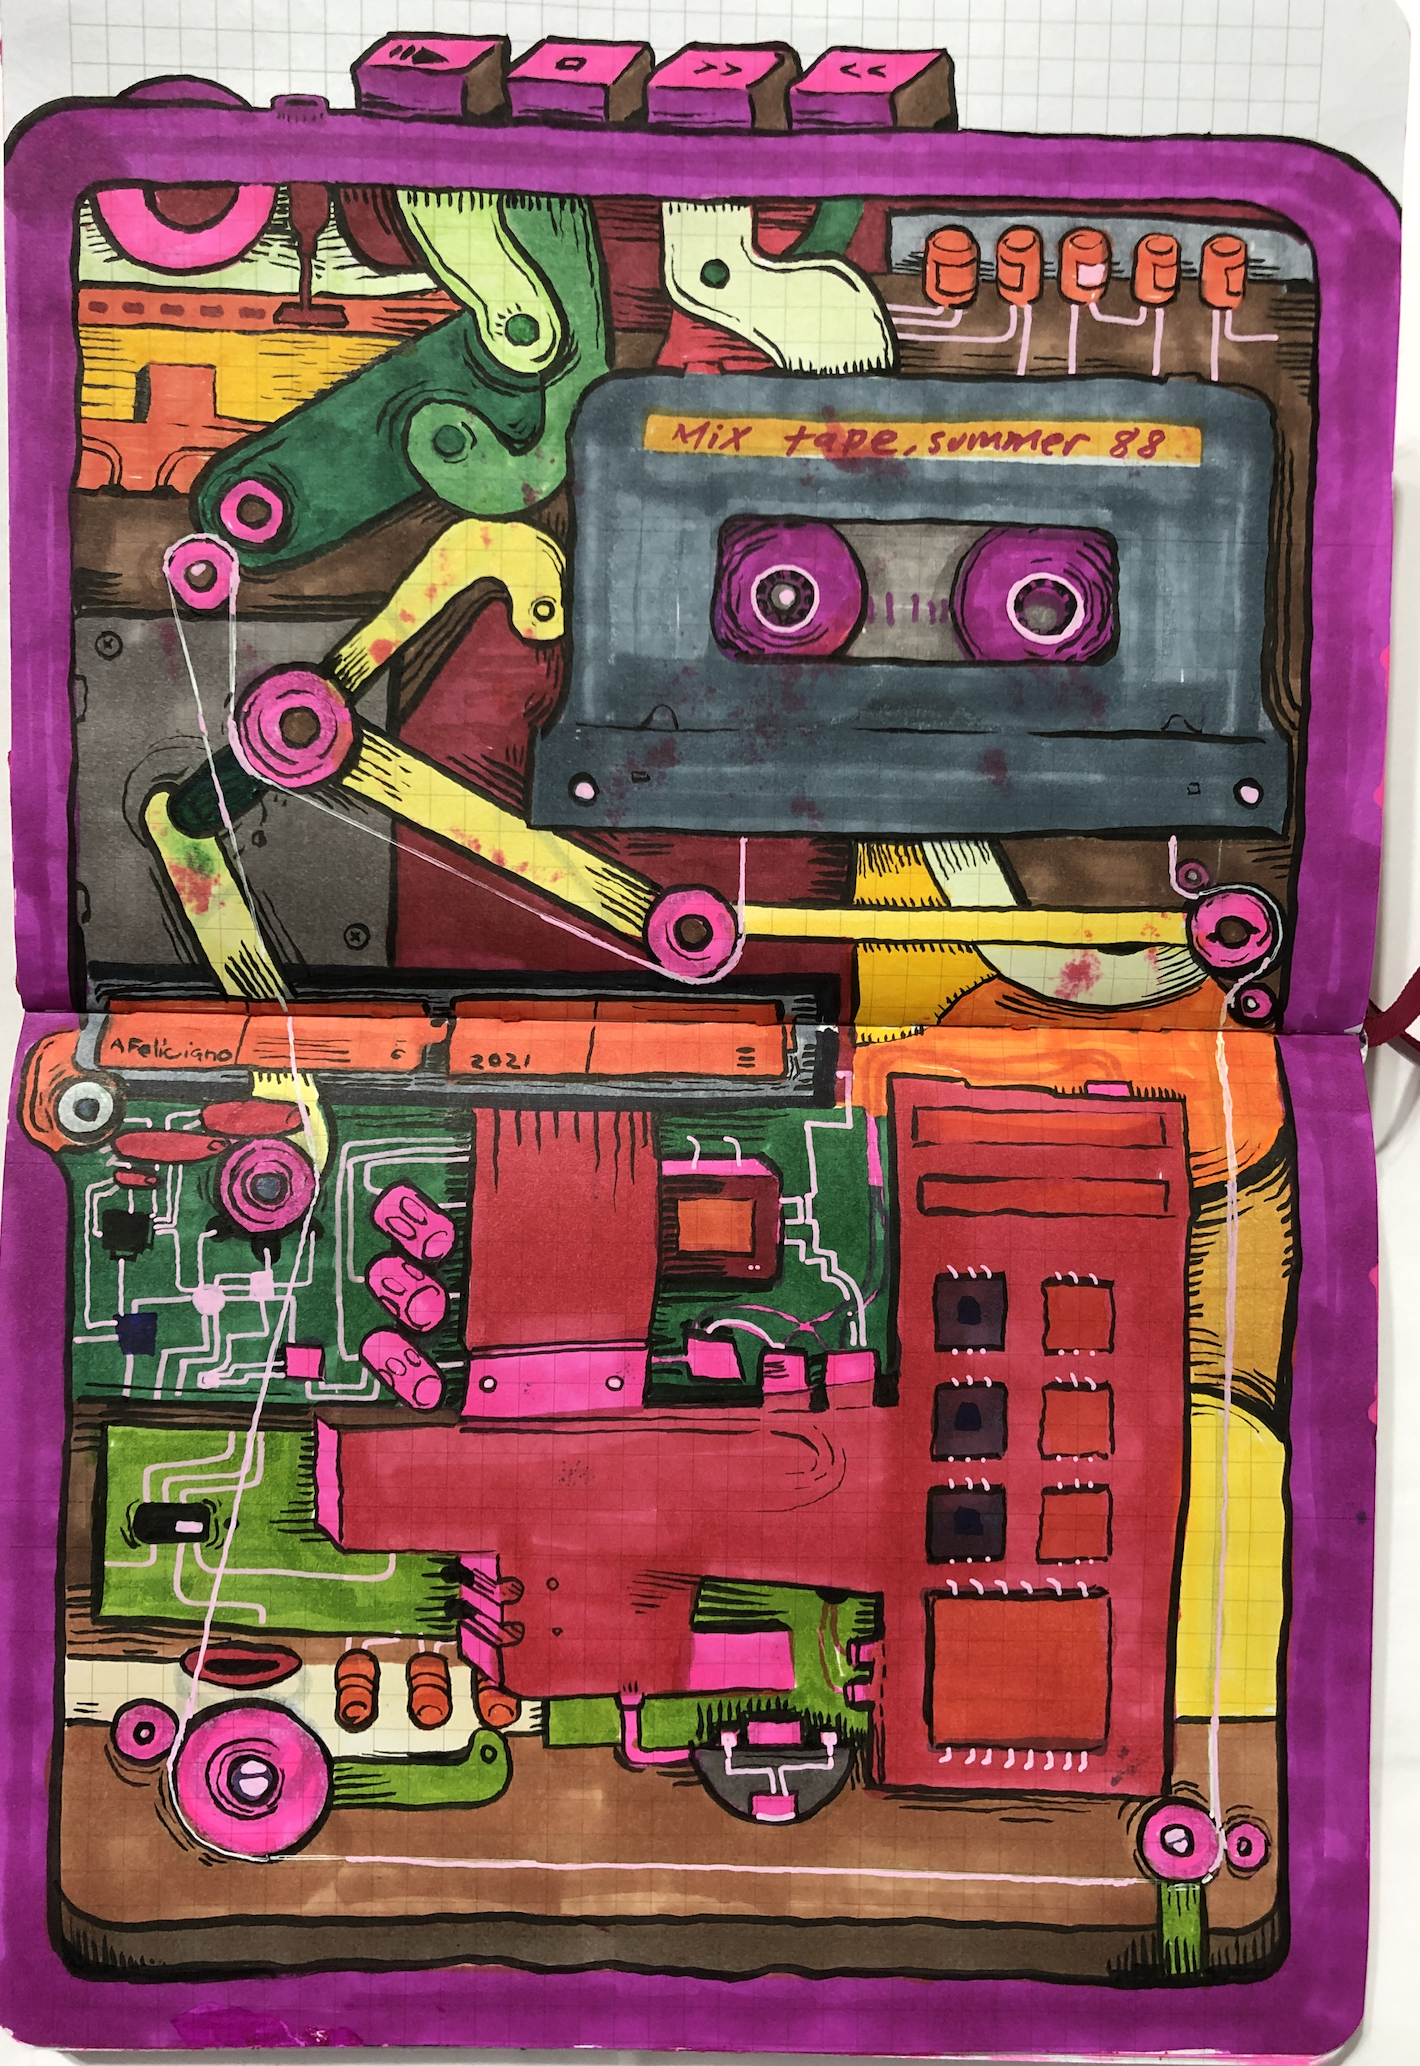 ink and marker illustration of the inside of a walkman.